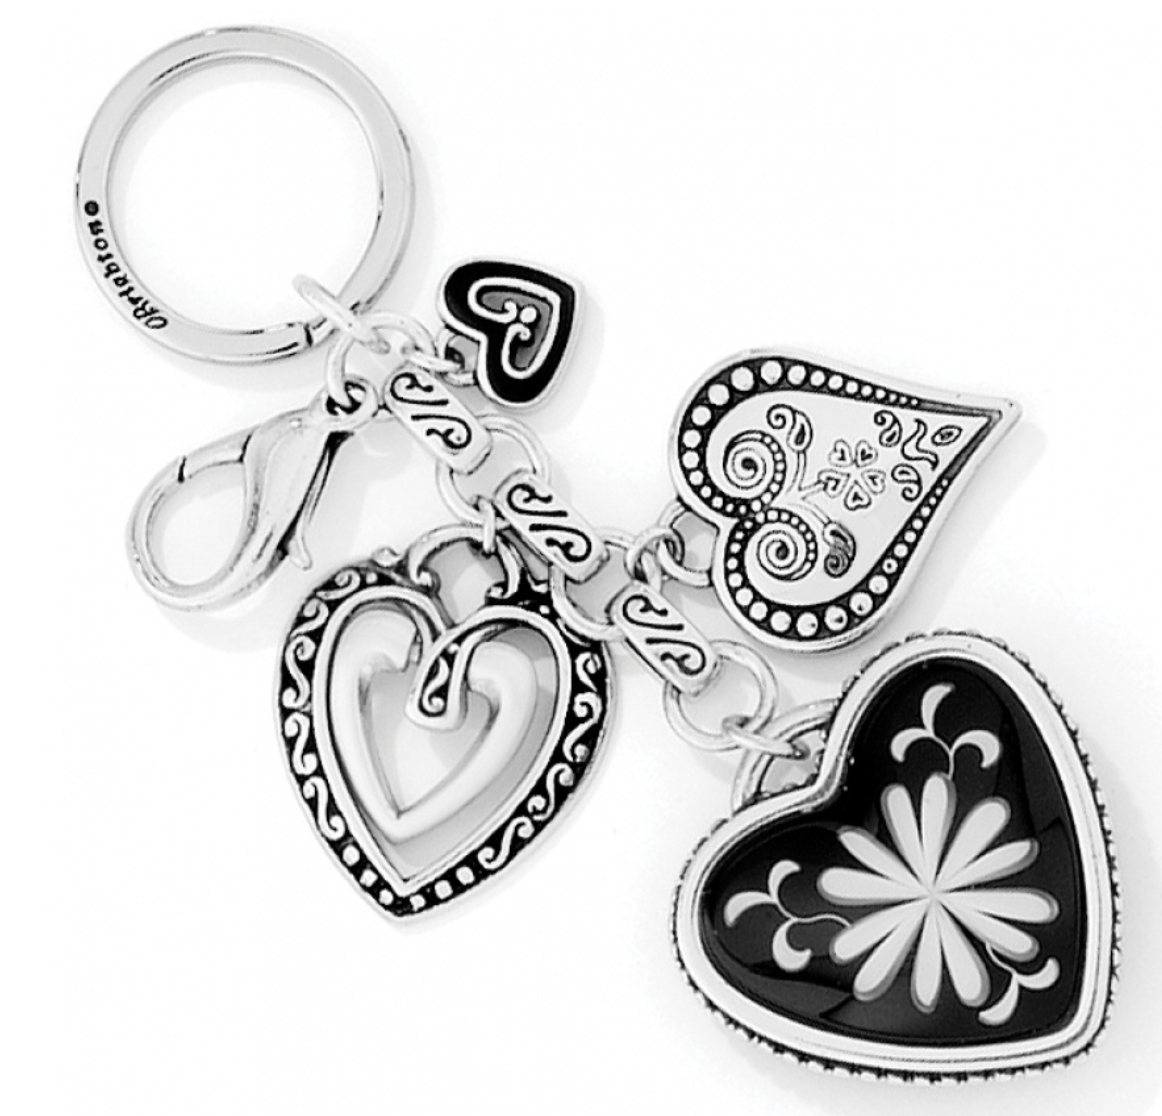 Water Lily Handbag Charm - Brighton